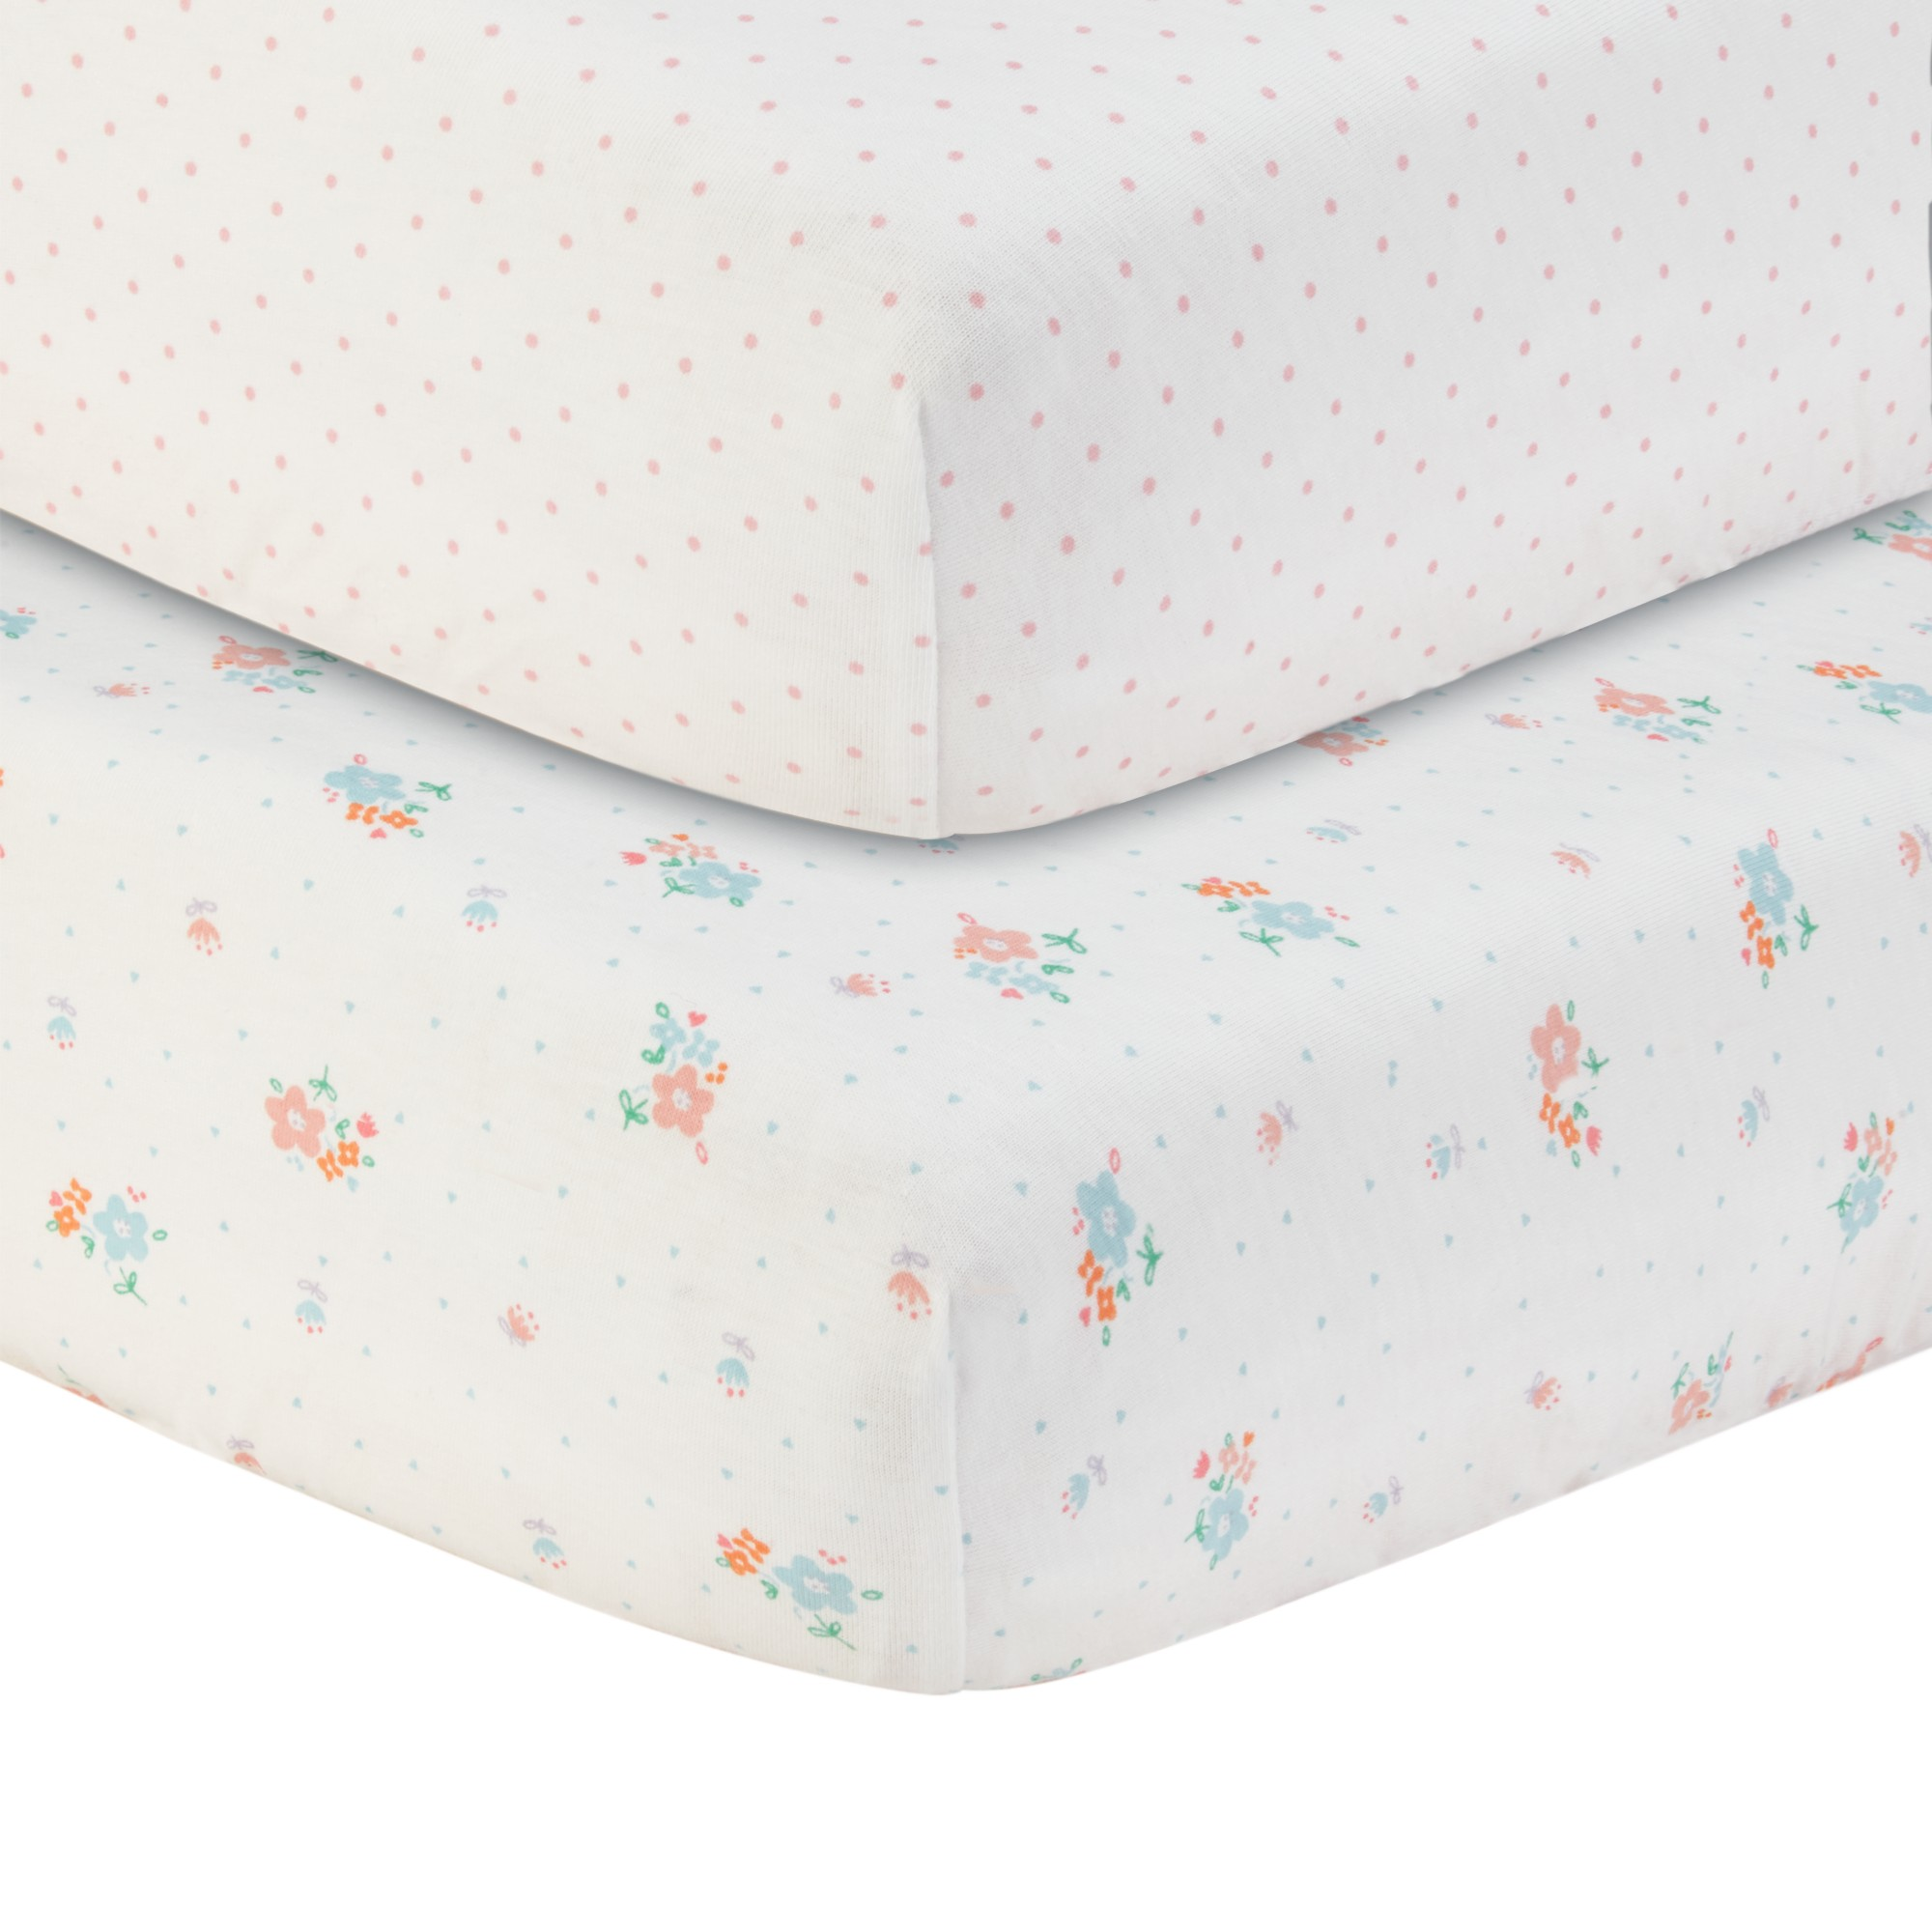 John Lewis Spotted and Floral Printed Fitted Cotbed Sheet